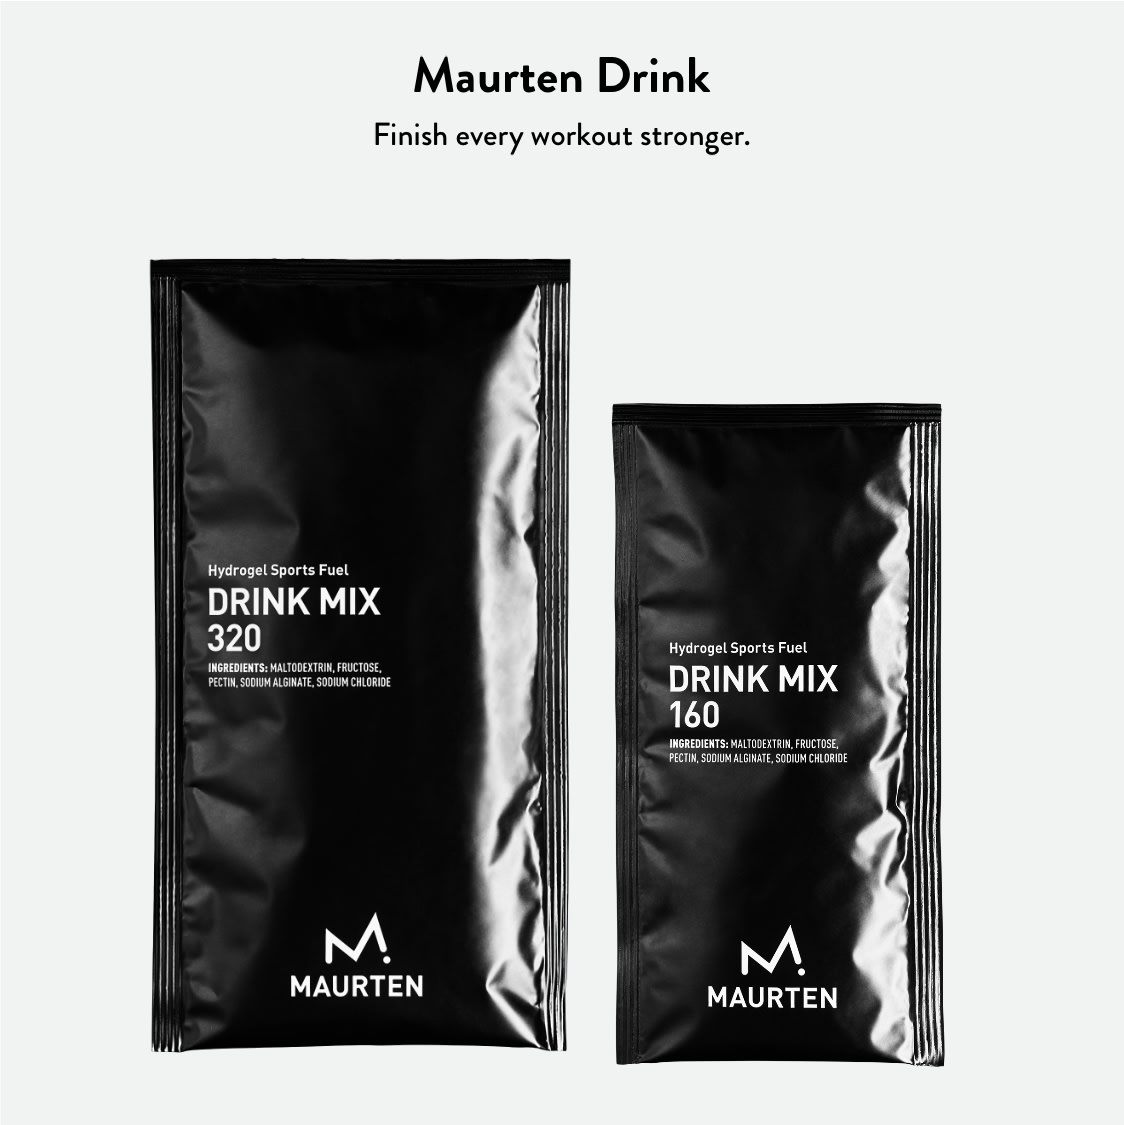 Maurten Drink Mix